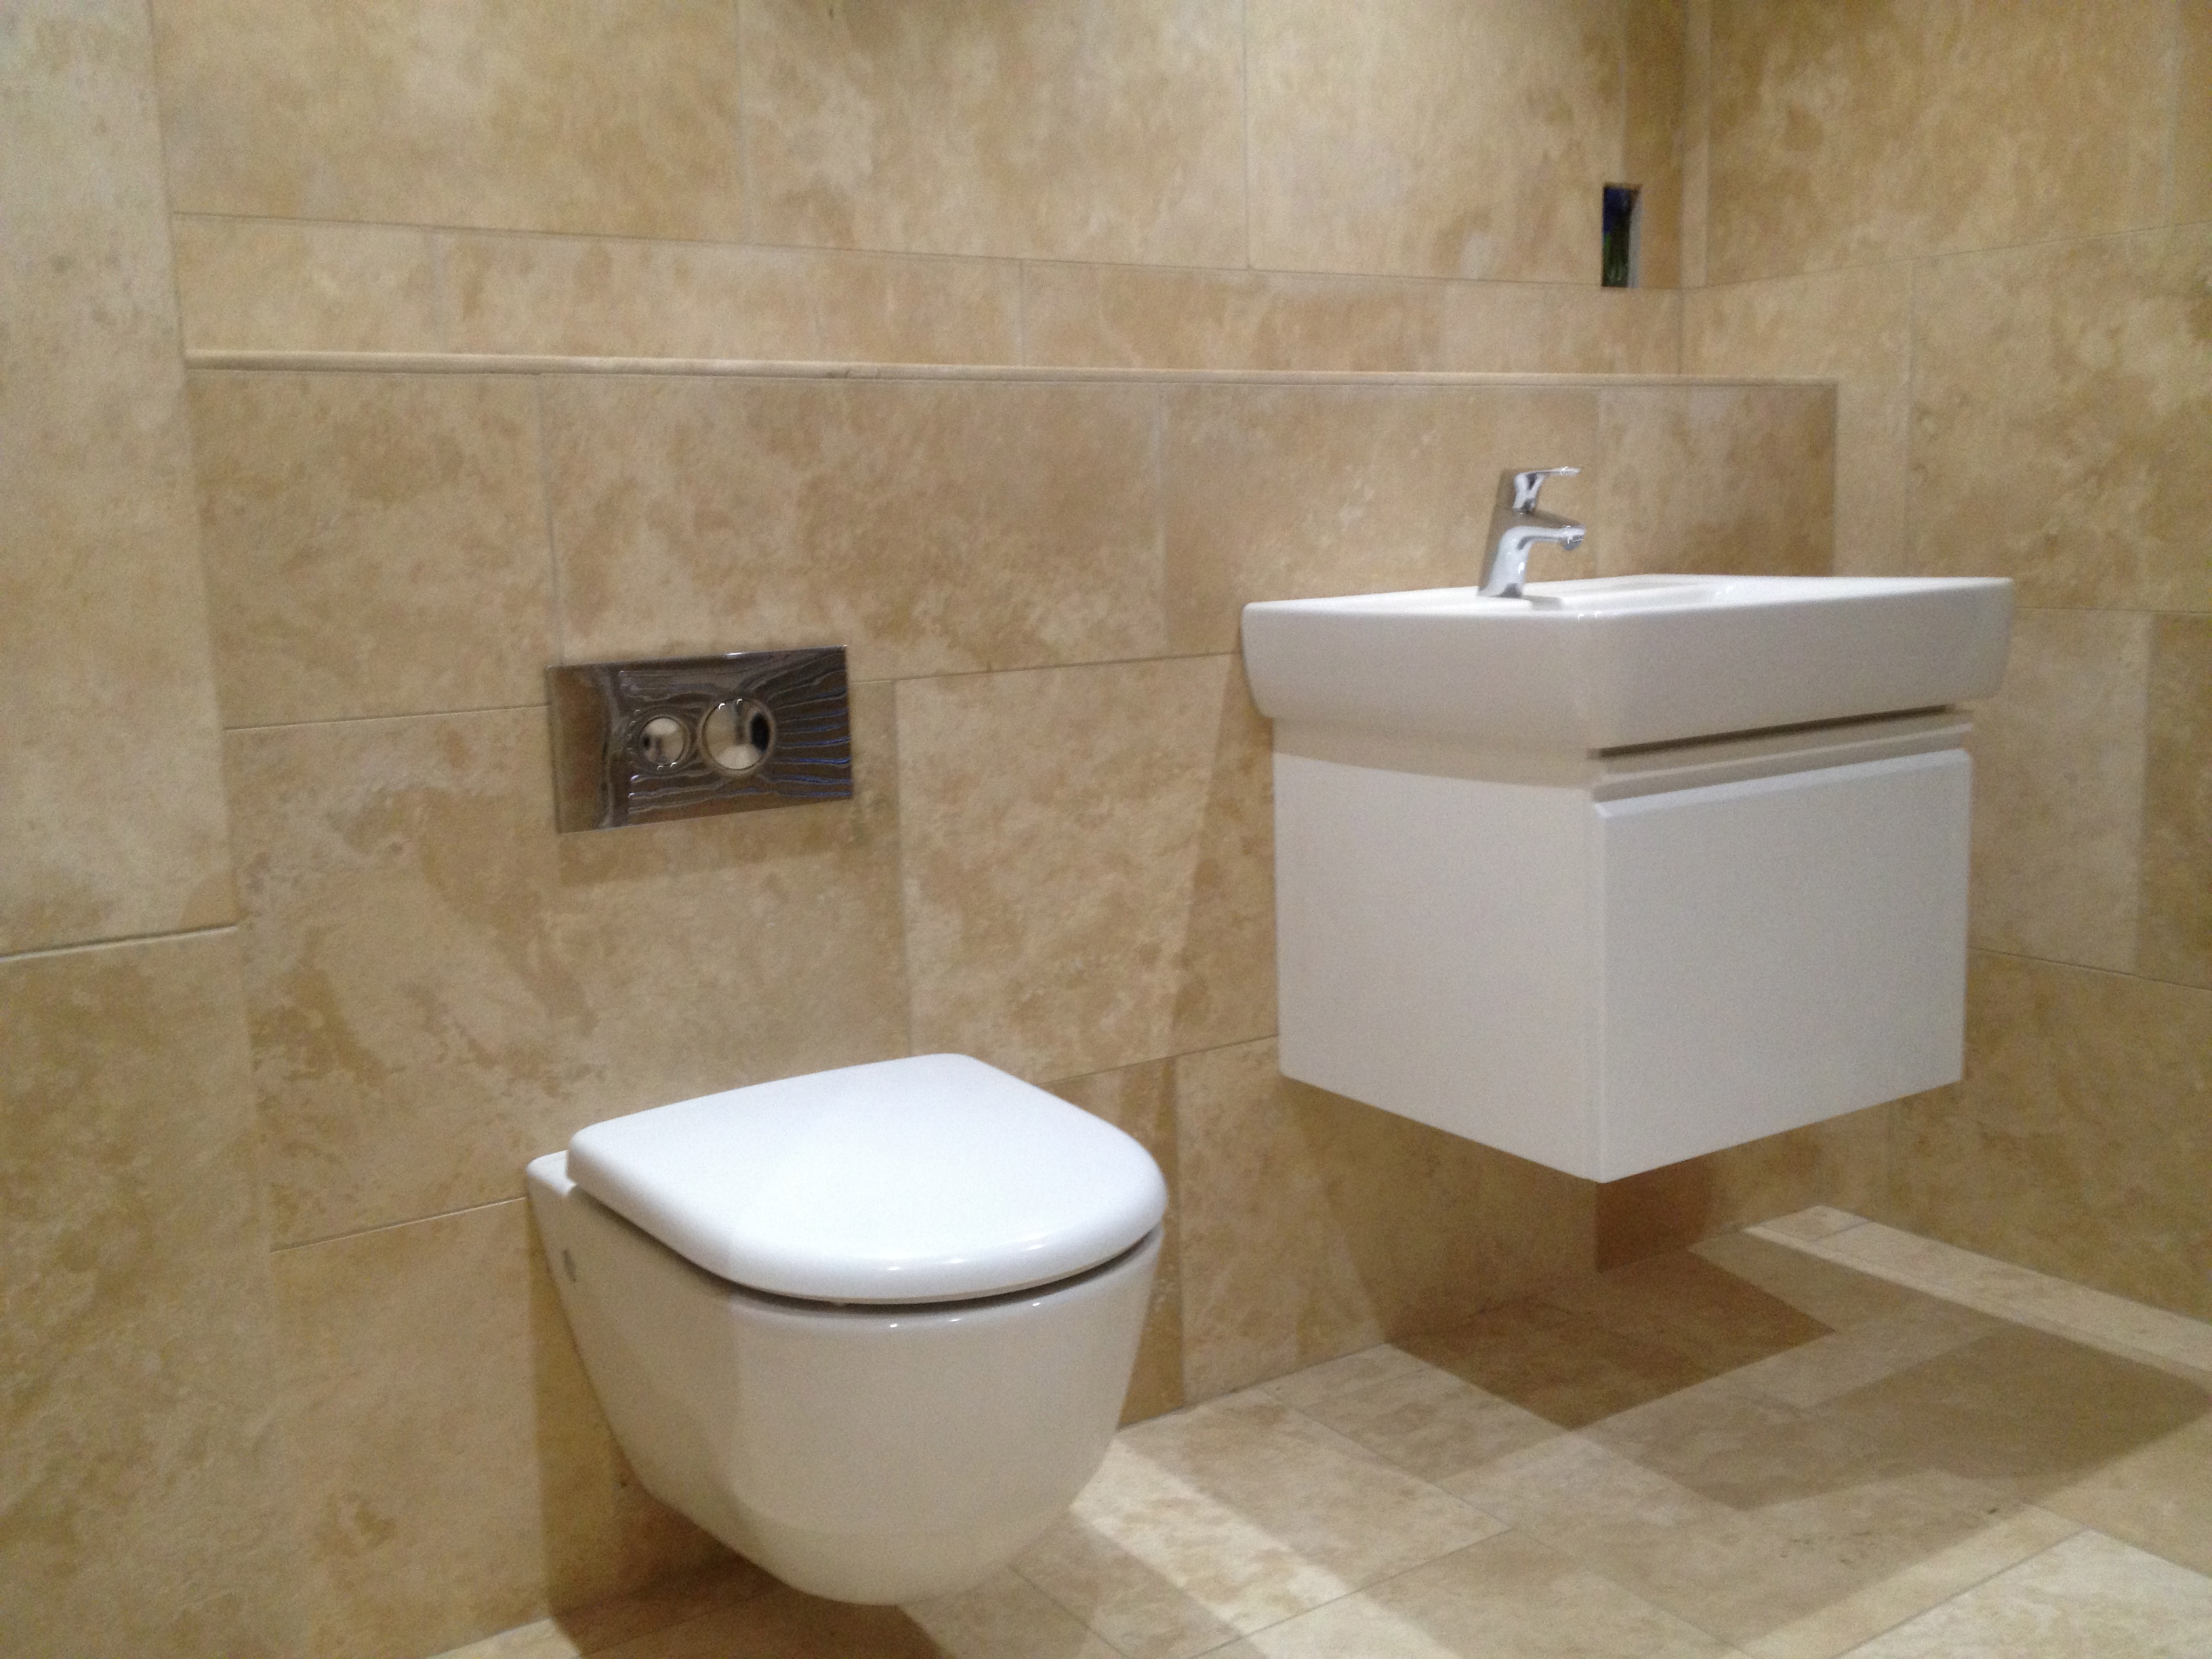 bathroom installation Archives - Paul Chaplow Plumbing and Heating Ltd